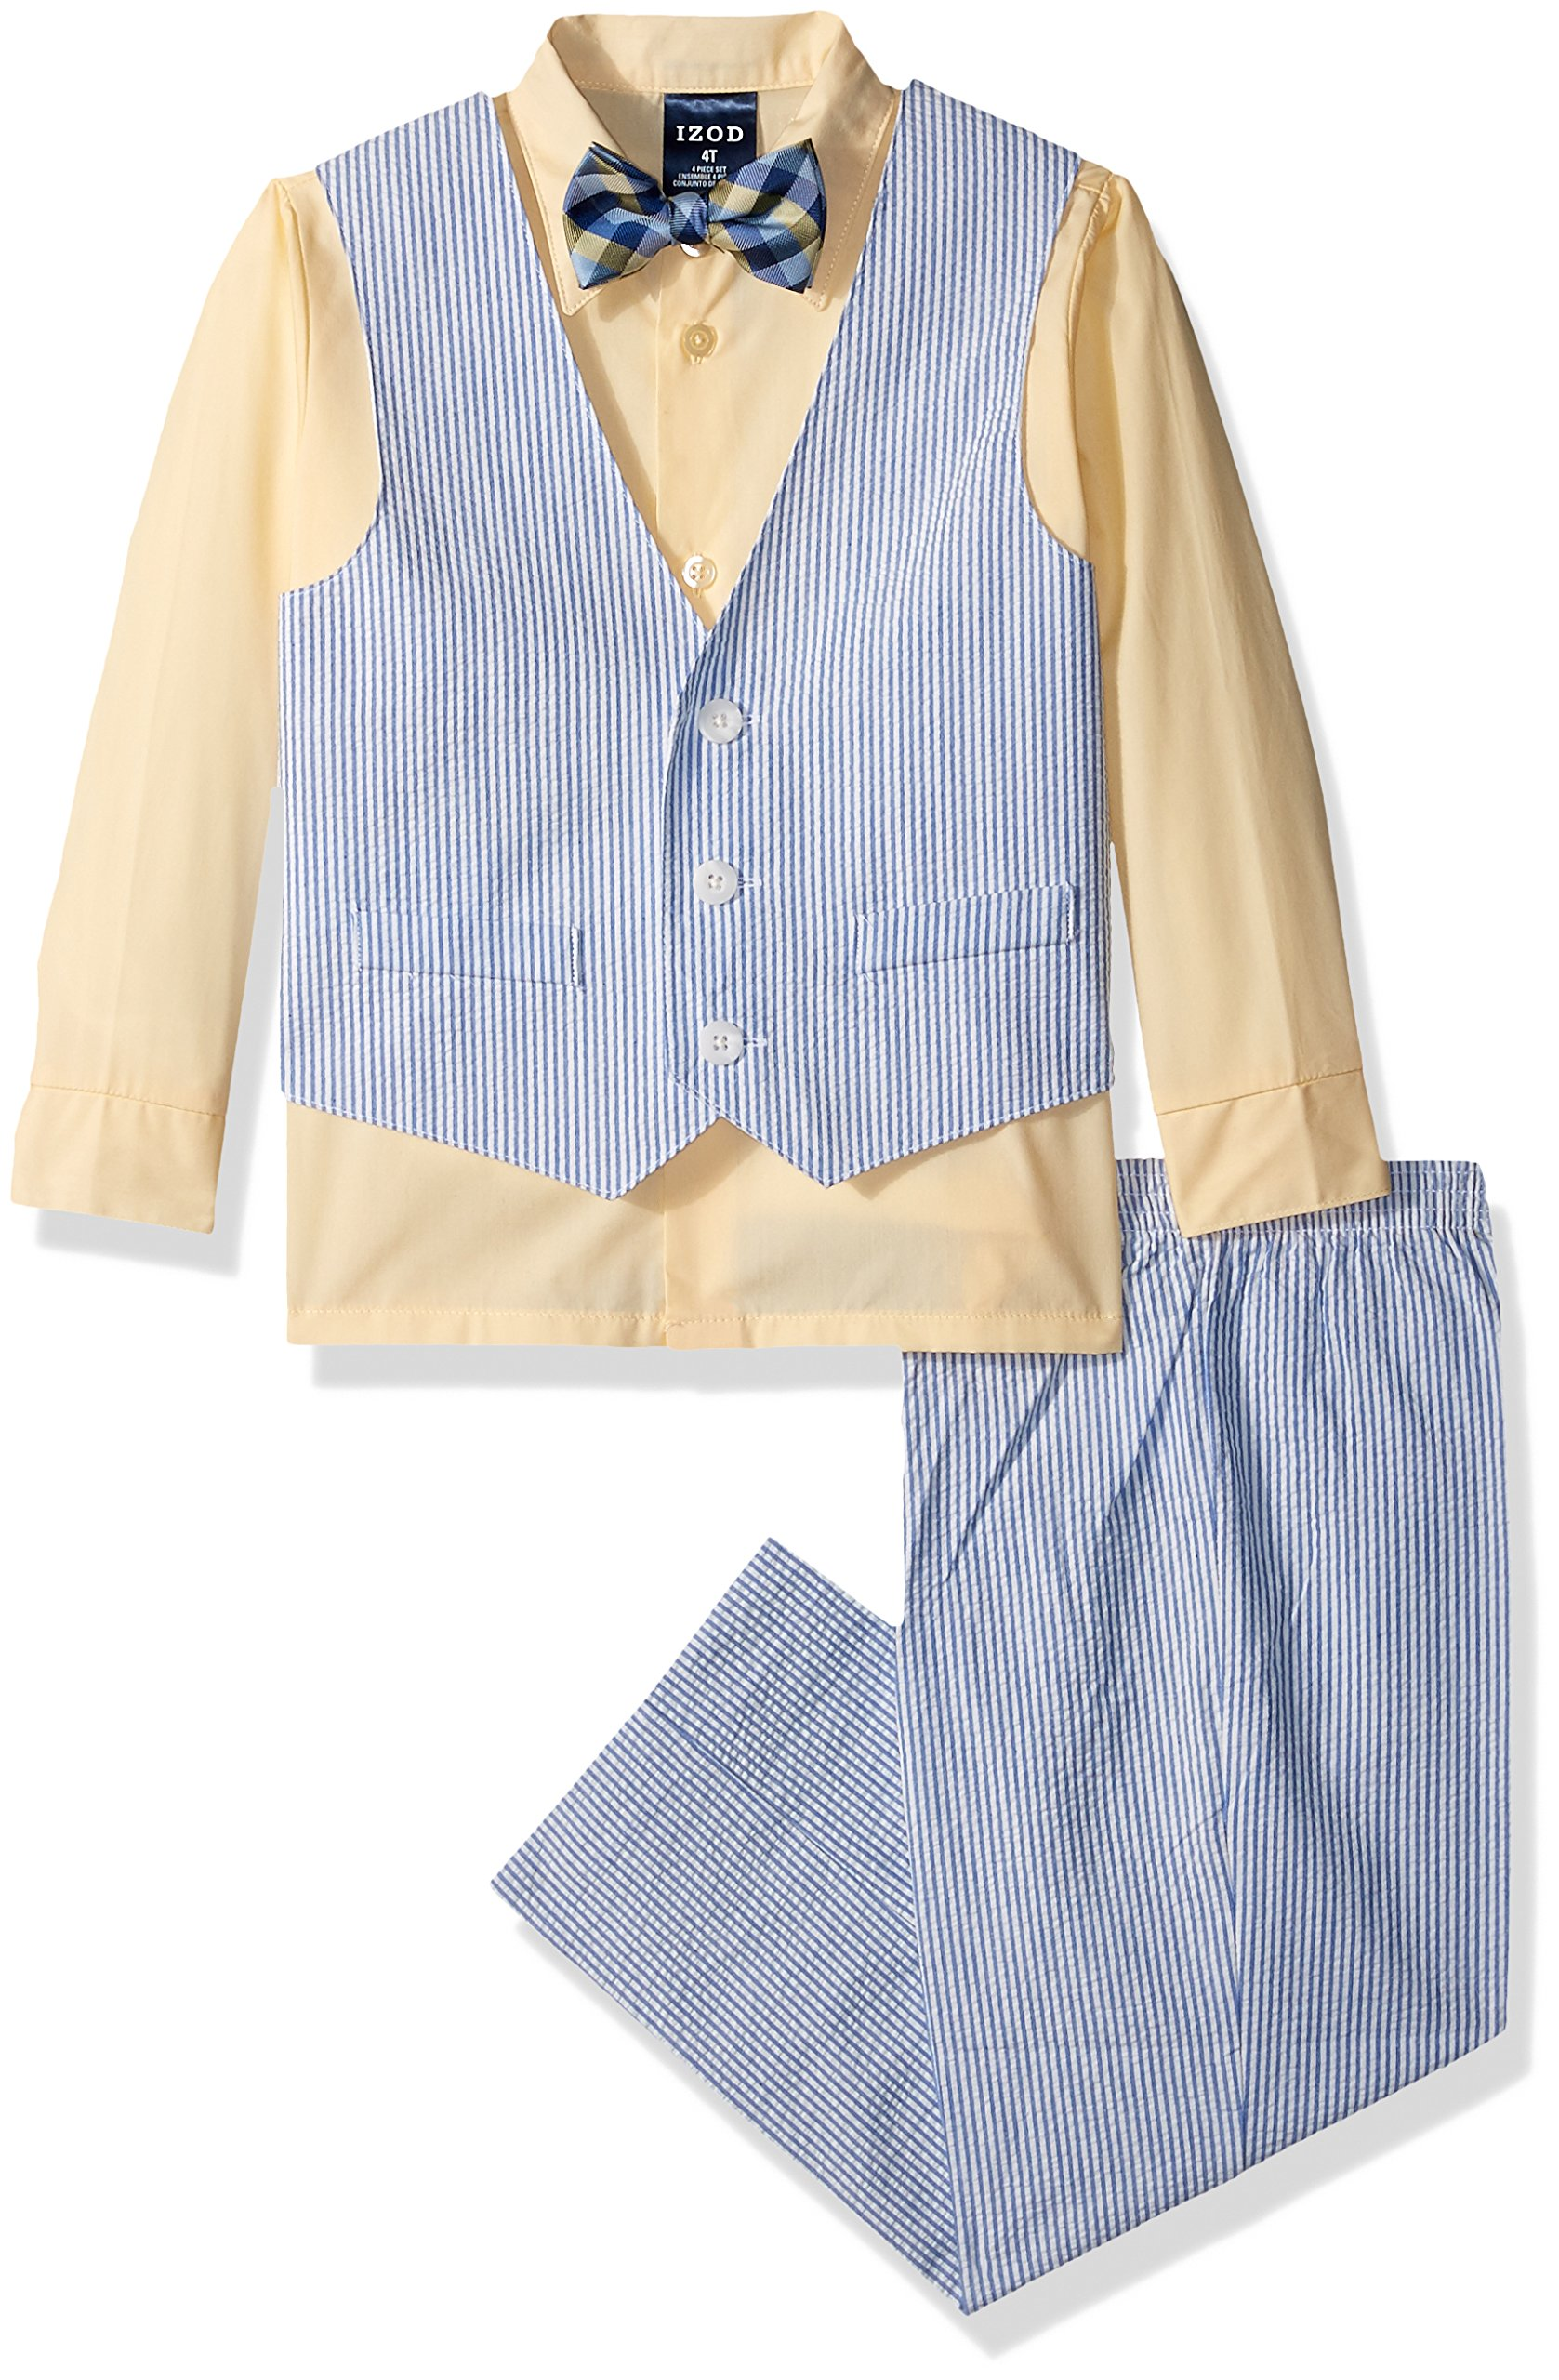 Izod boys 4-Piece Vest Set with Dress Shirt, Bow Tie, Pants, and Vest, Yellow Veil, 4